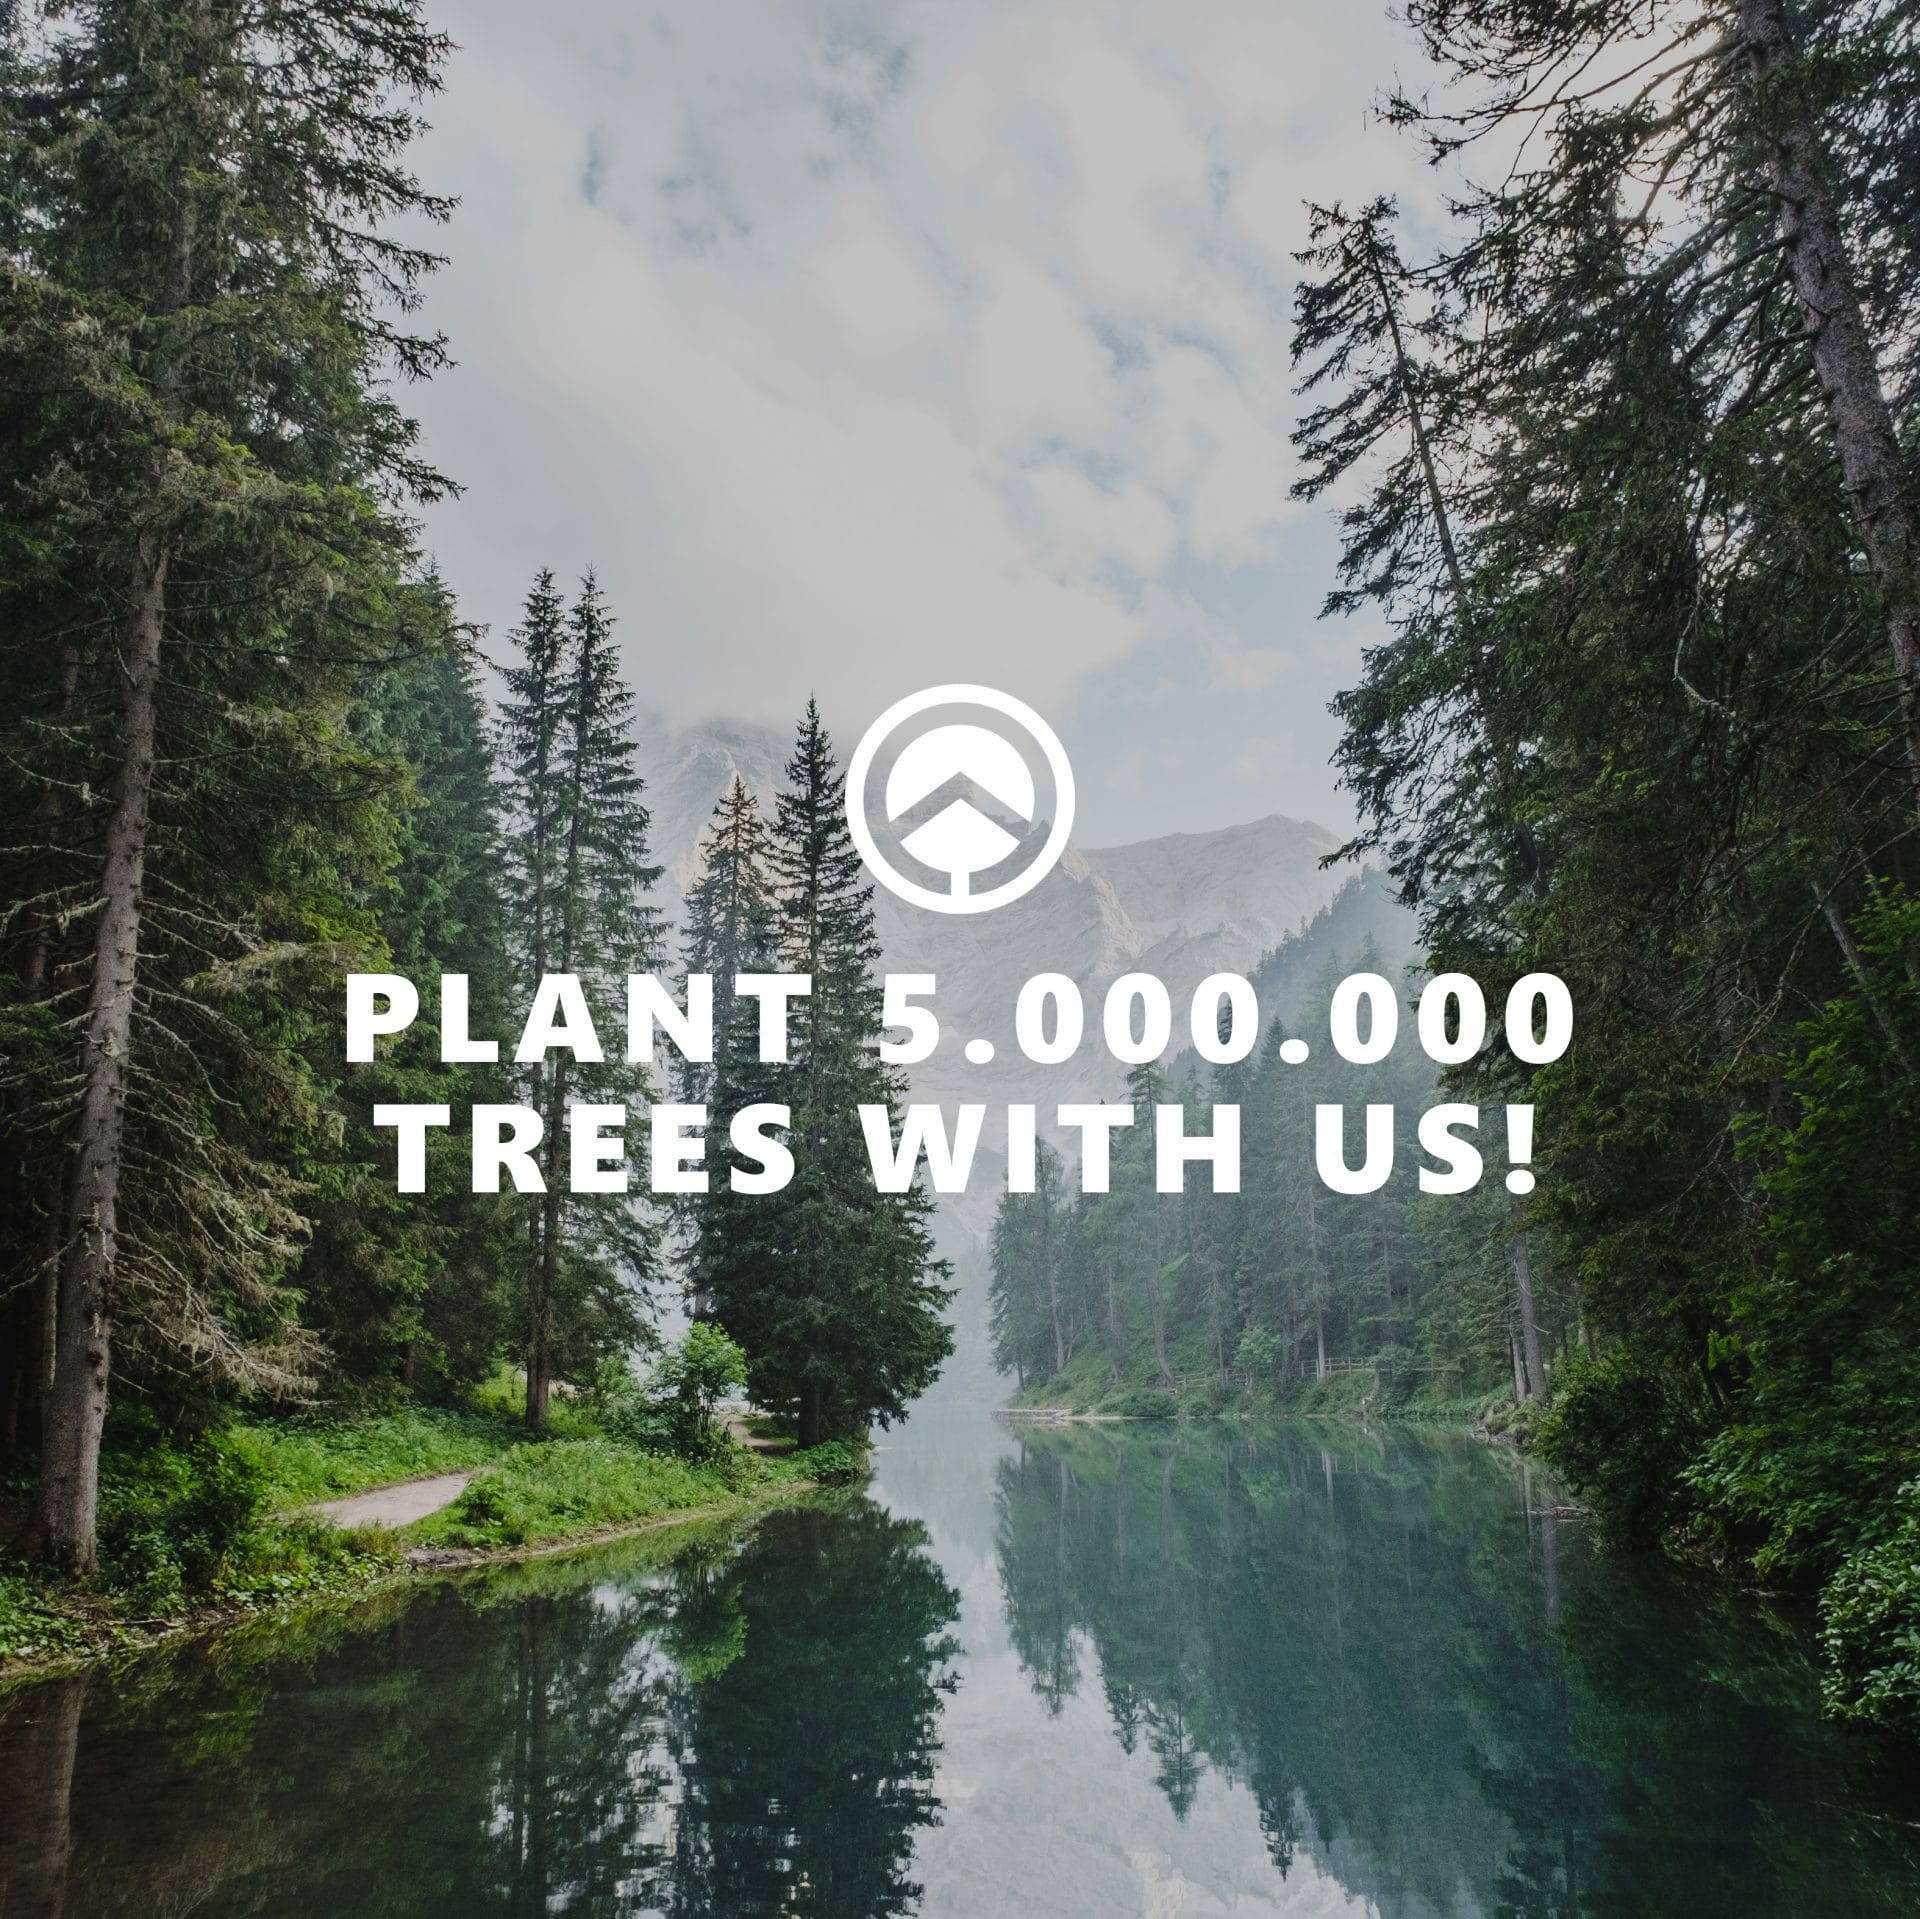 Plant 5000000 trees with us_gsm